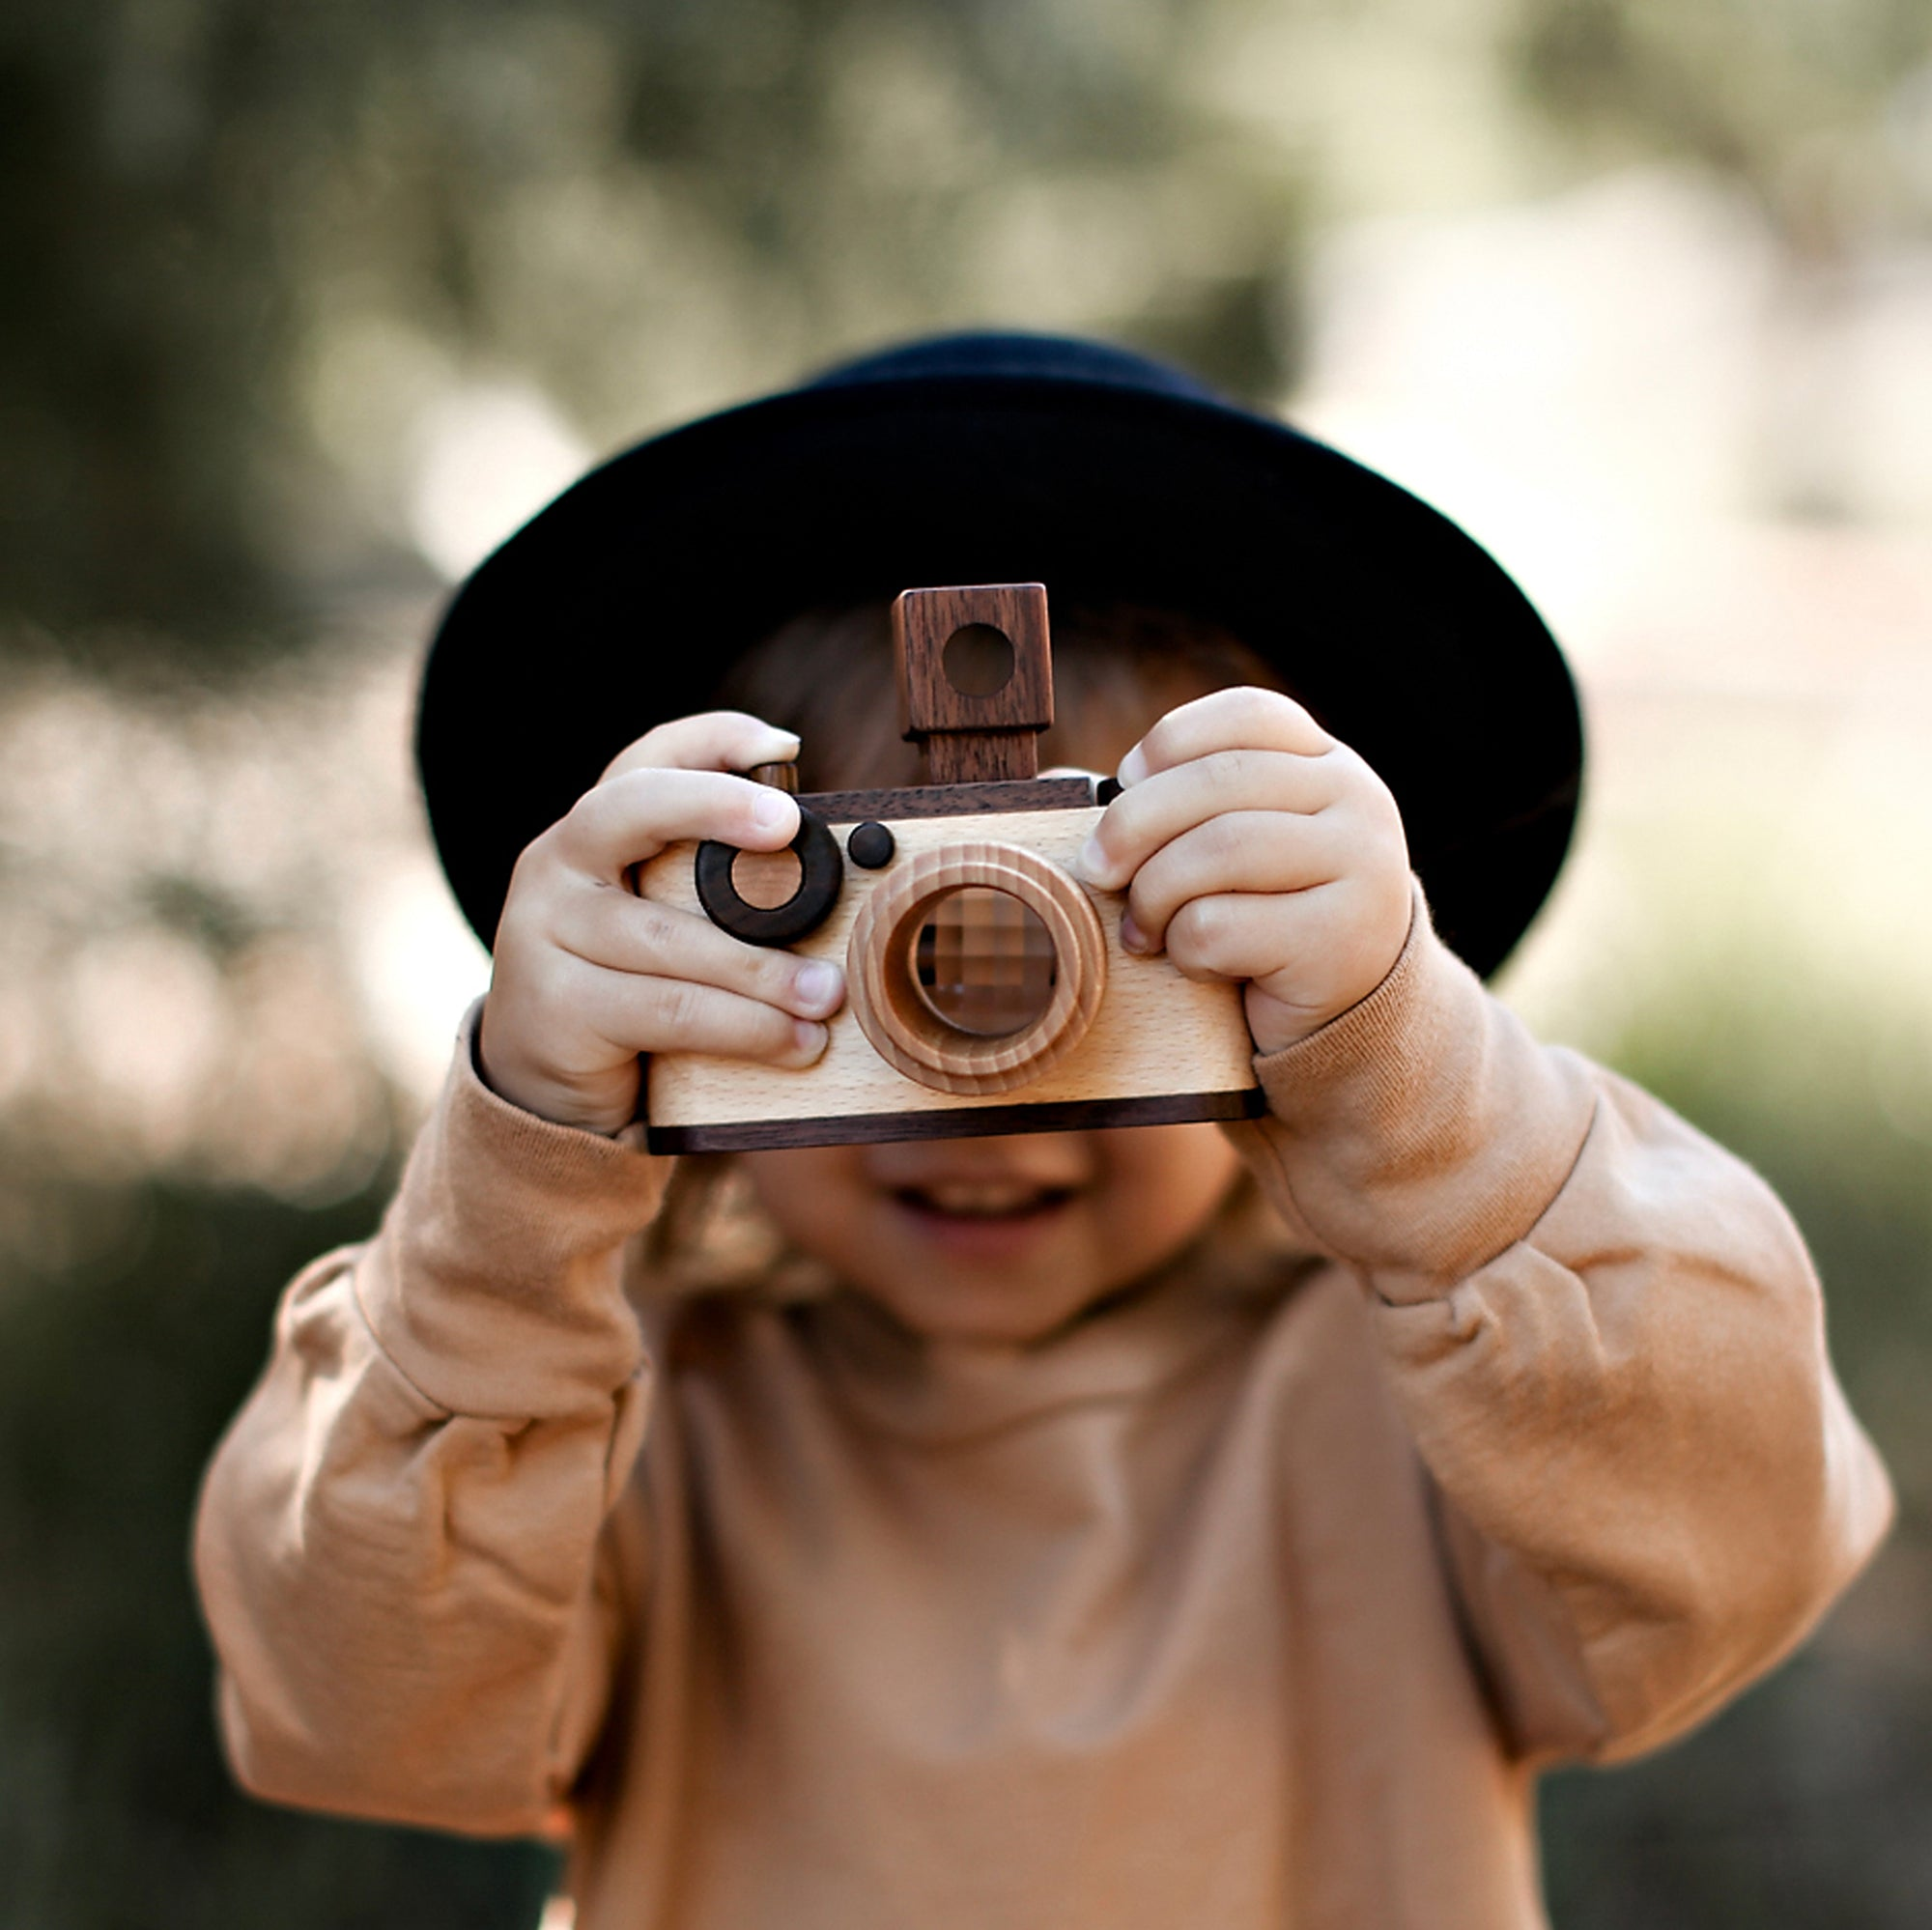 Original Wooden Toy Camera